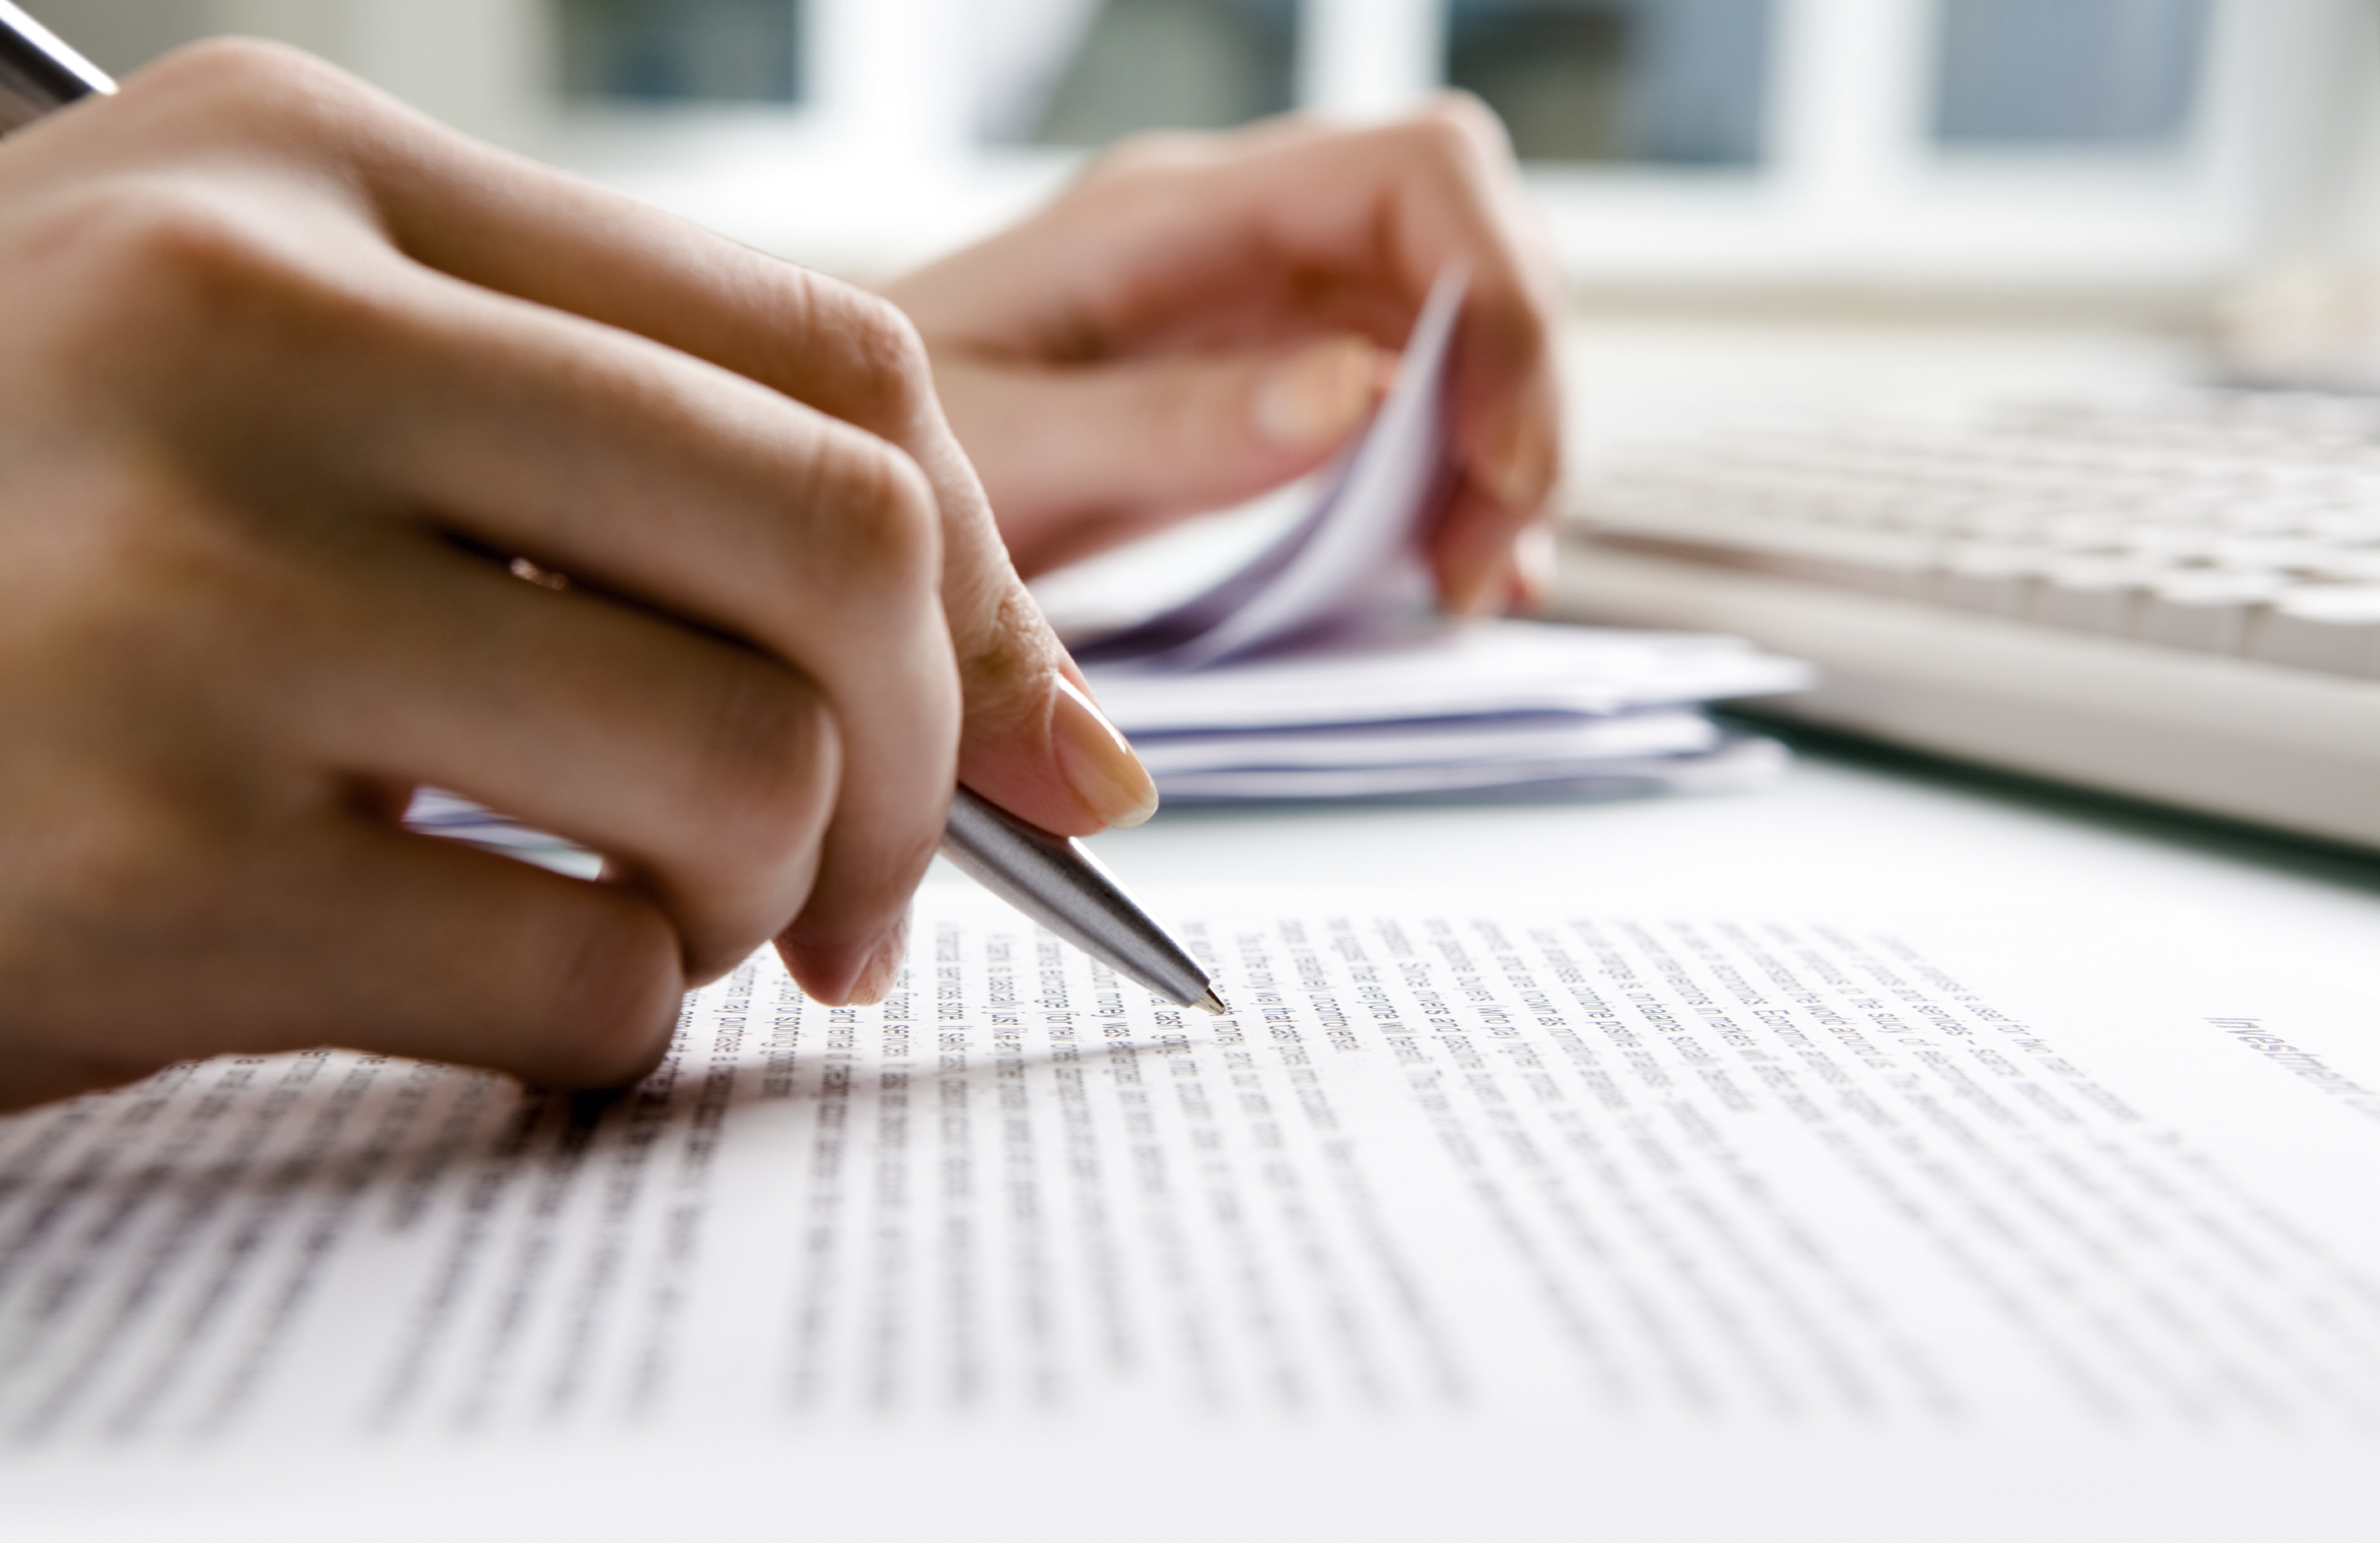 proofread and edit your essay, paper, article (up to 2000 words) in 16 hours